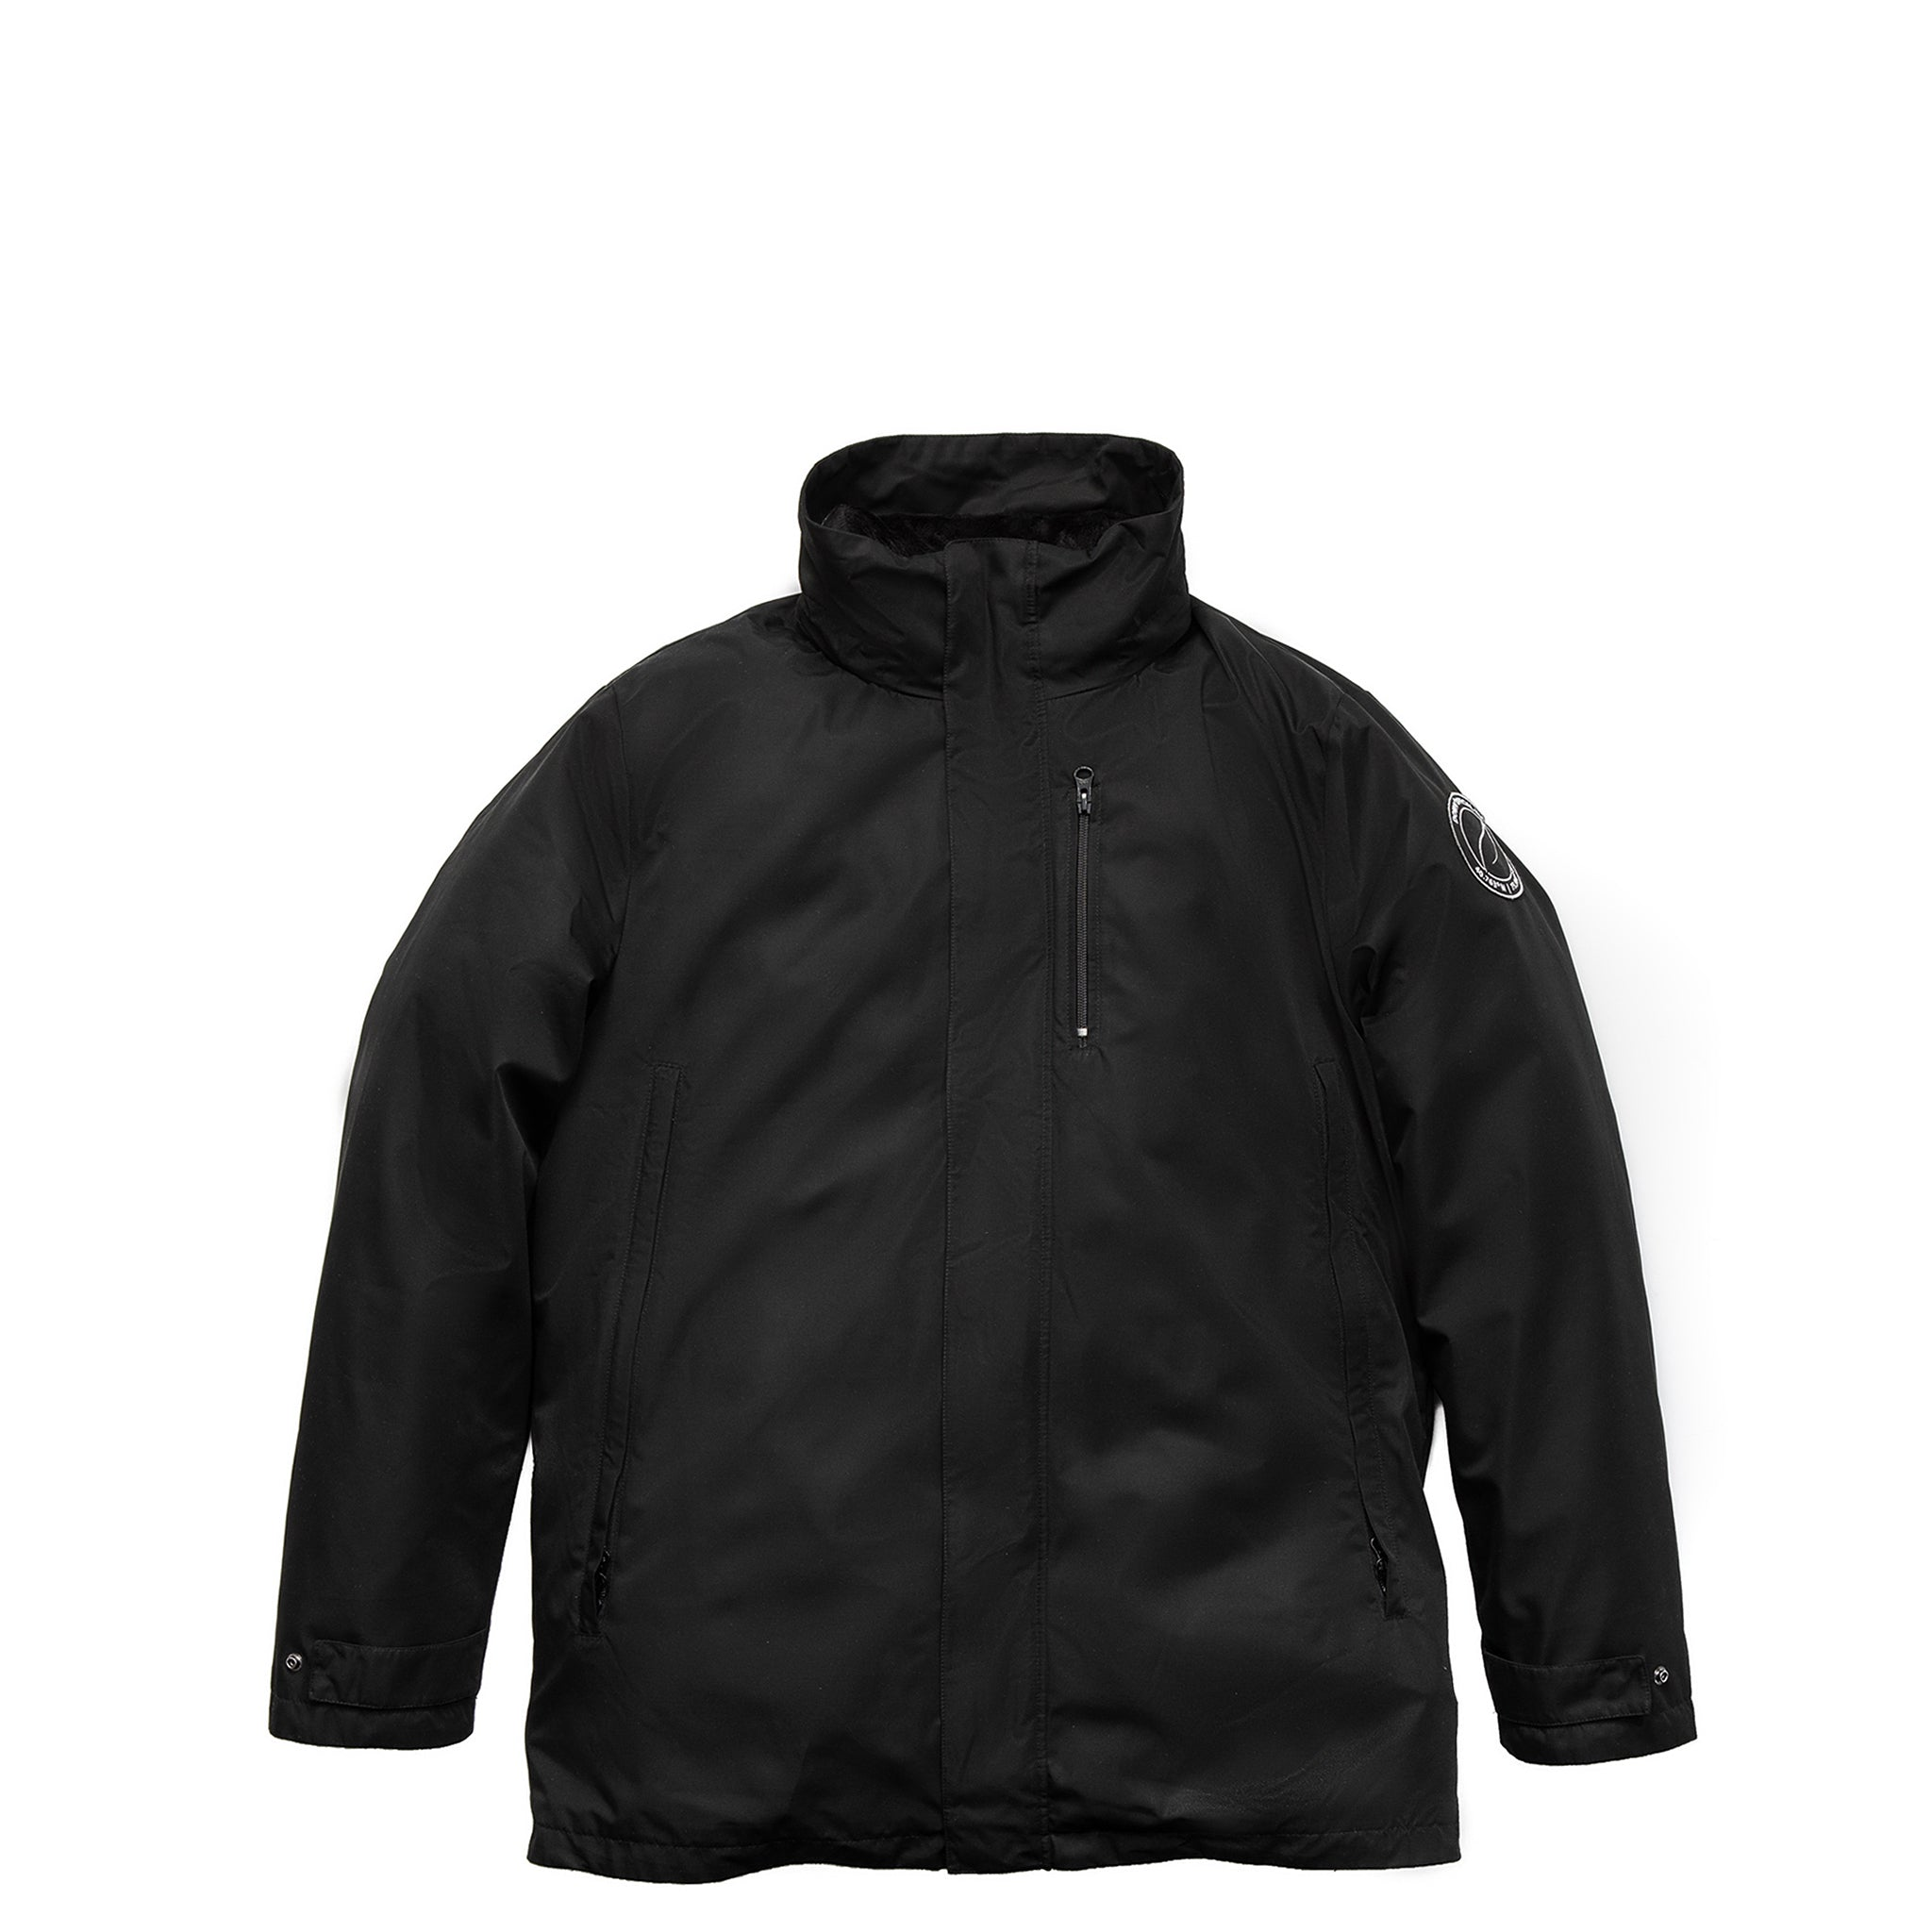 Down Official 3-in-1 Daniel Parka